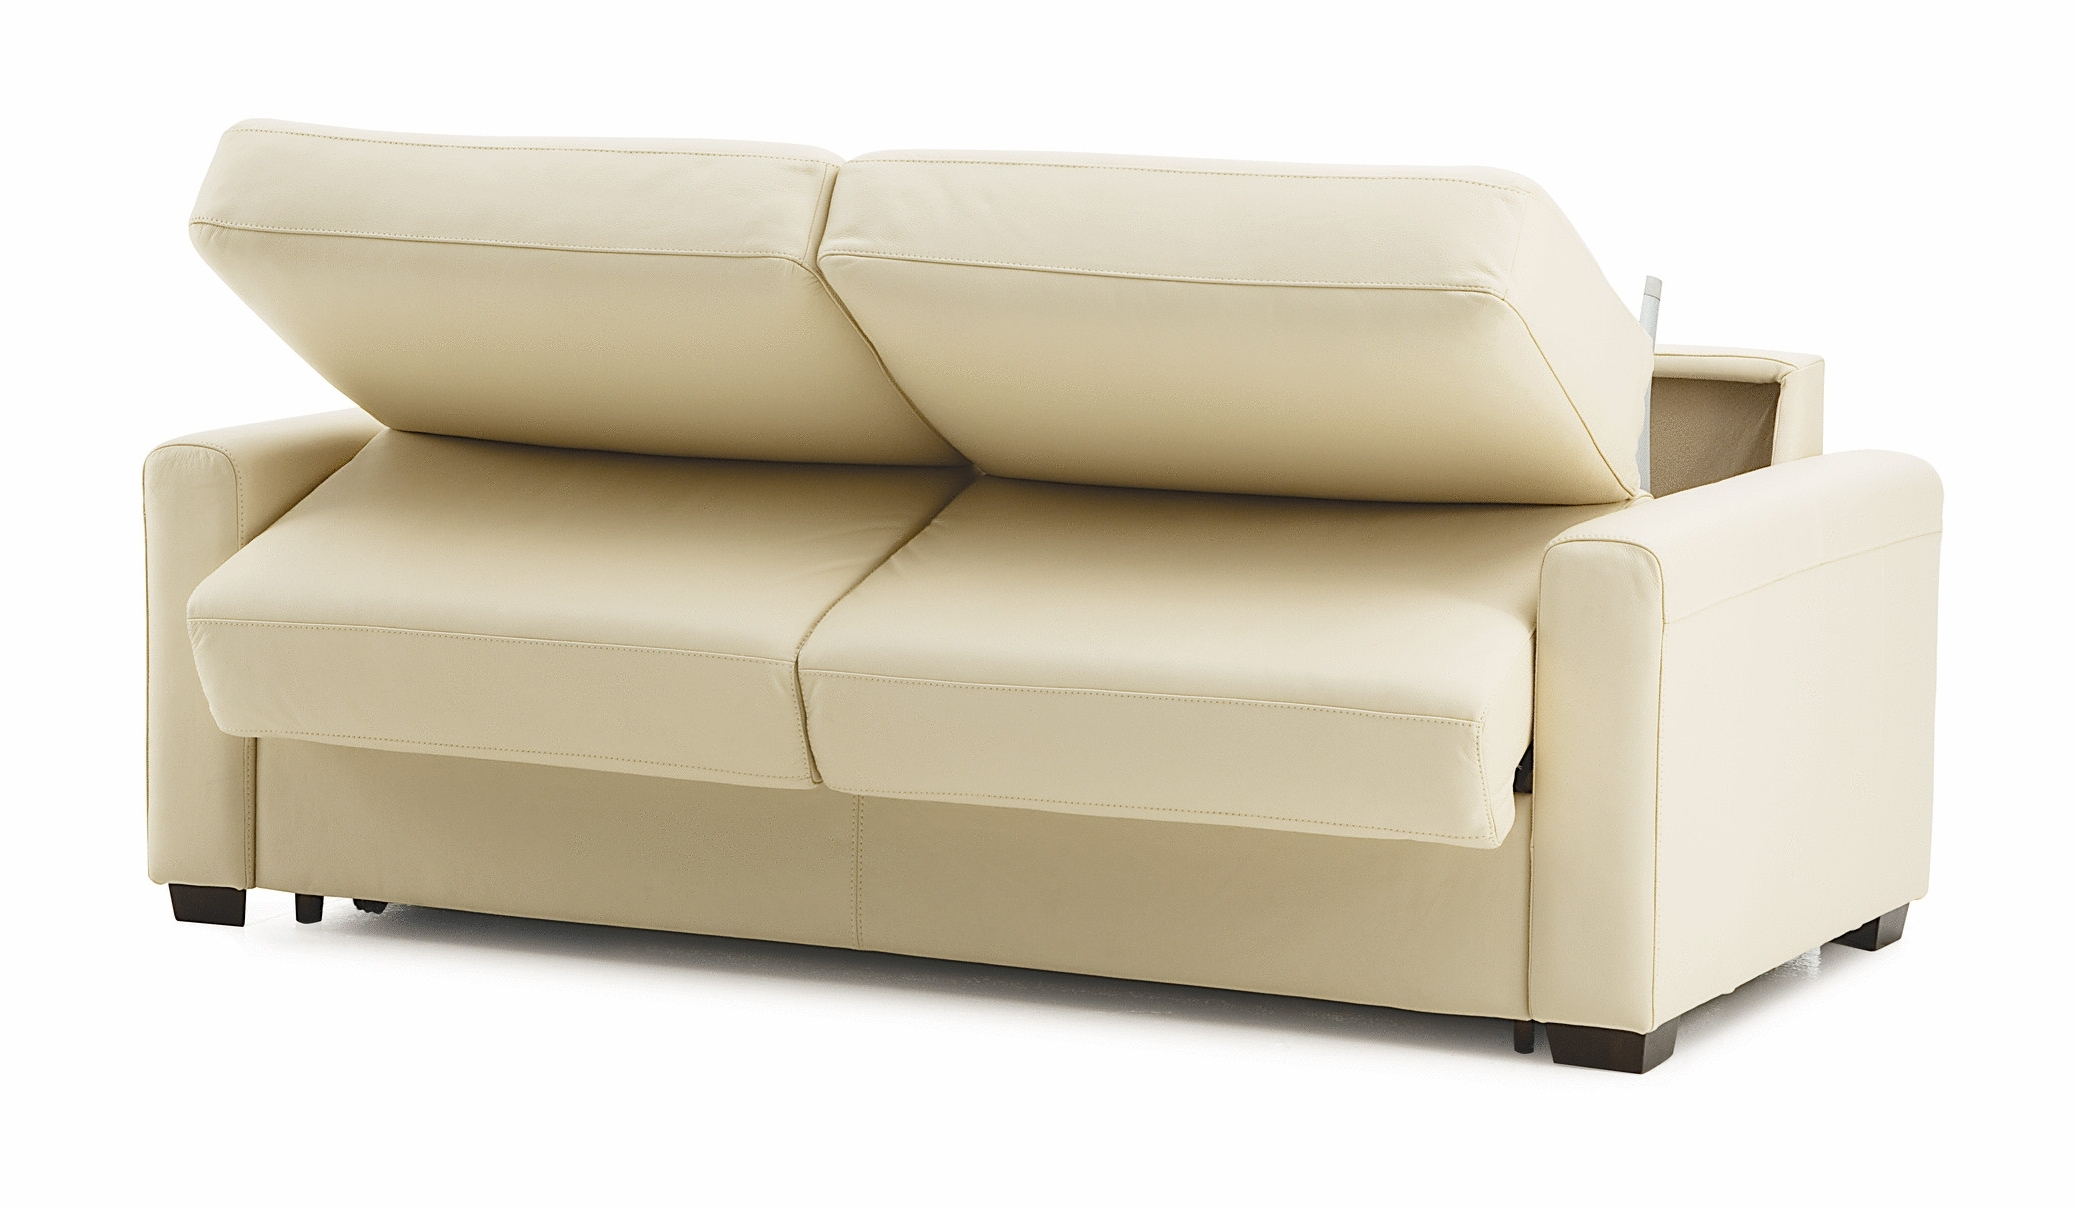 Maximizing Small Spaces Using White Leather Twin Size Sleeper Sofa For Well Known Twin Sleeper Sofa Chairs (View 12 of 20)